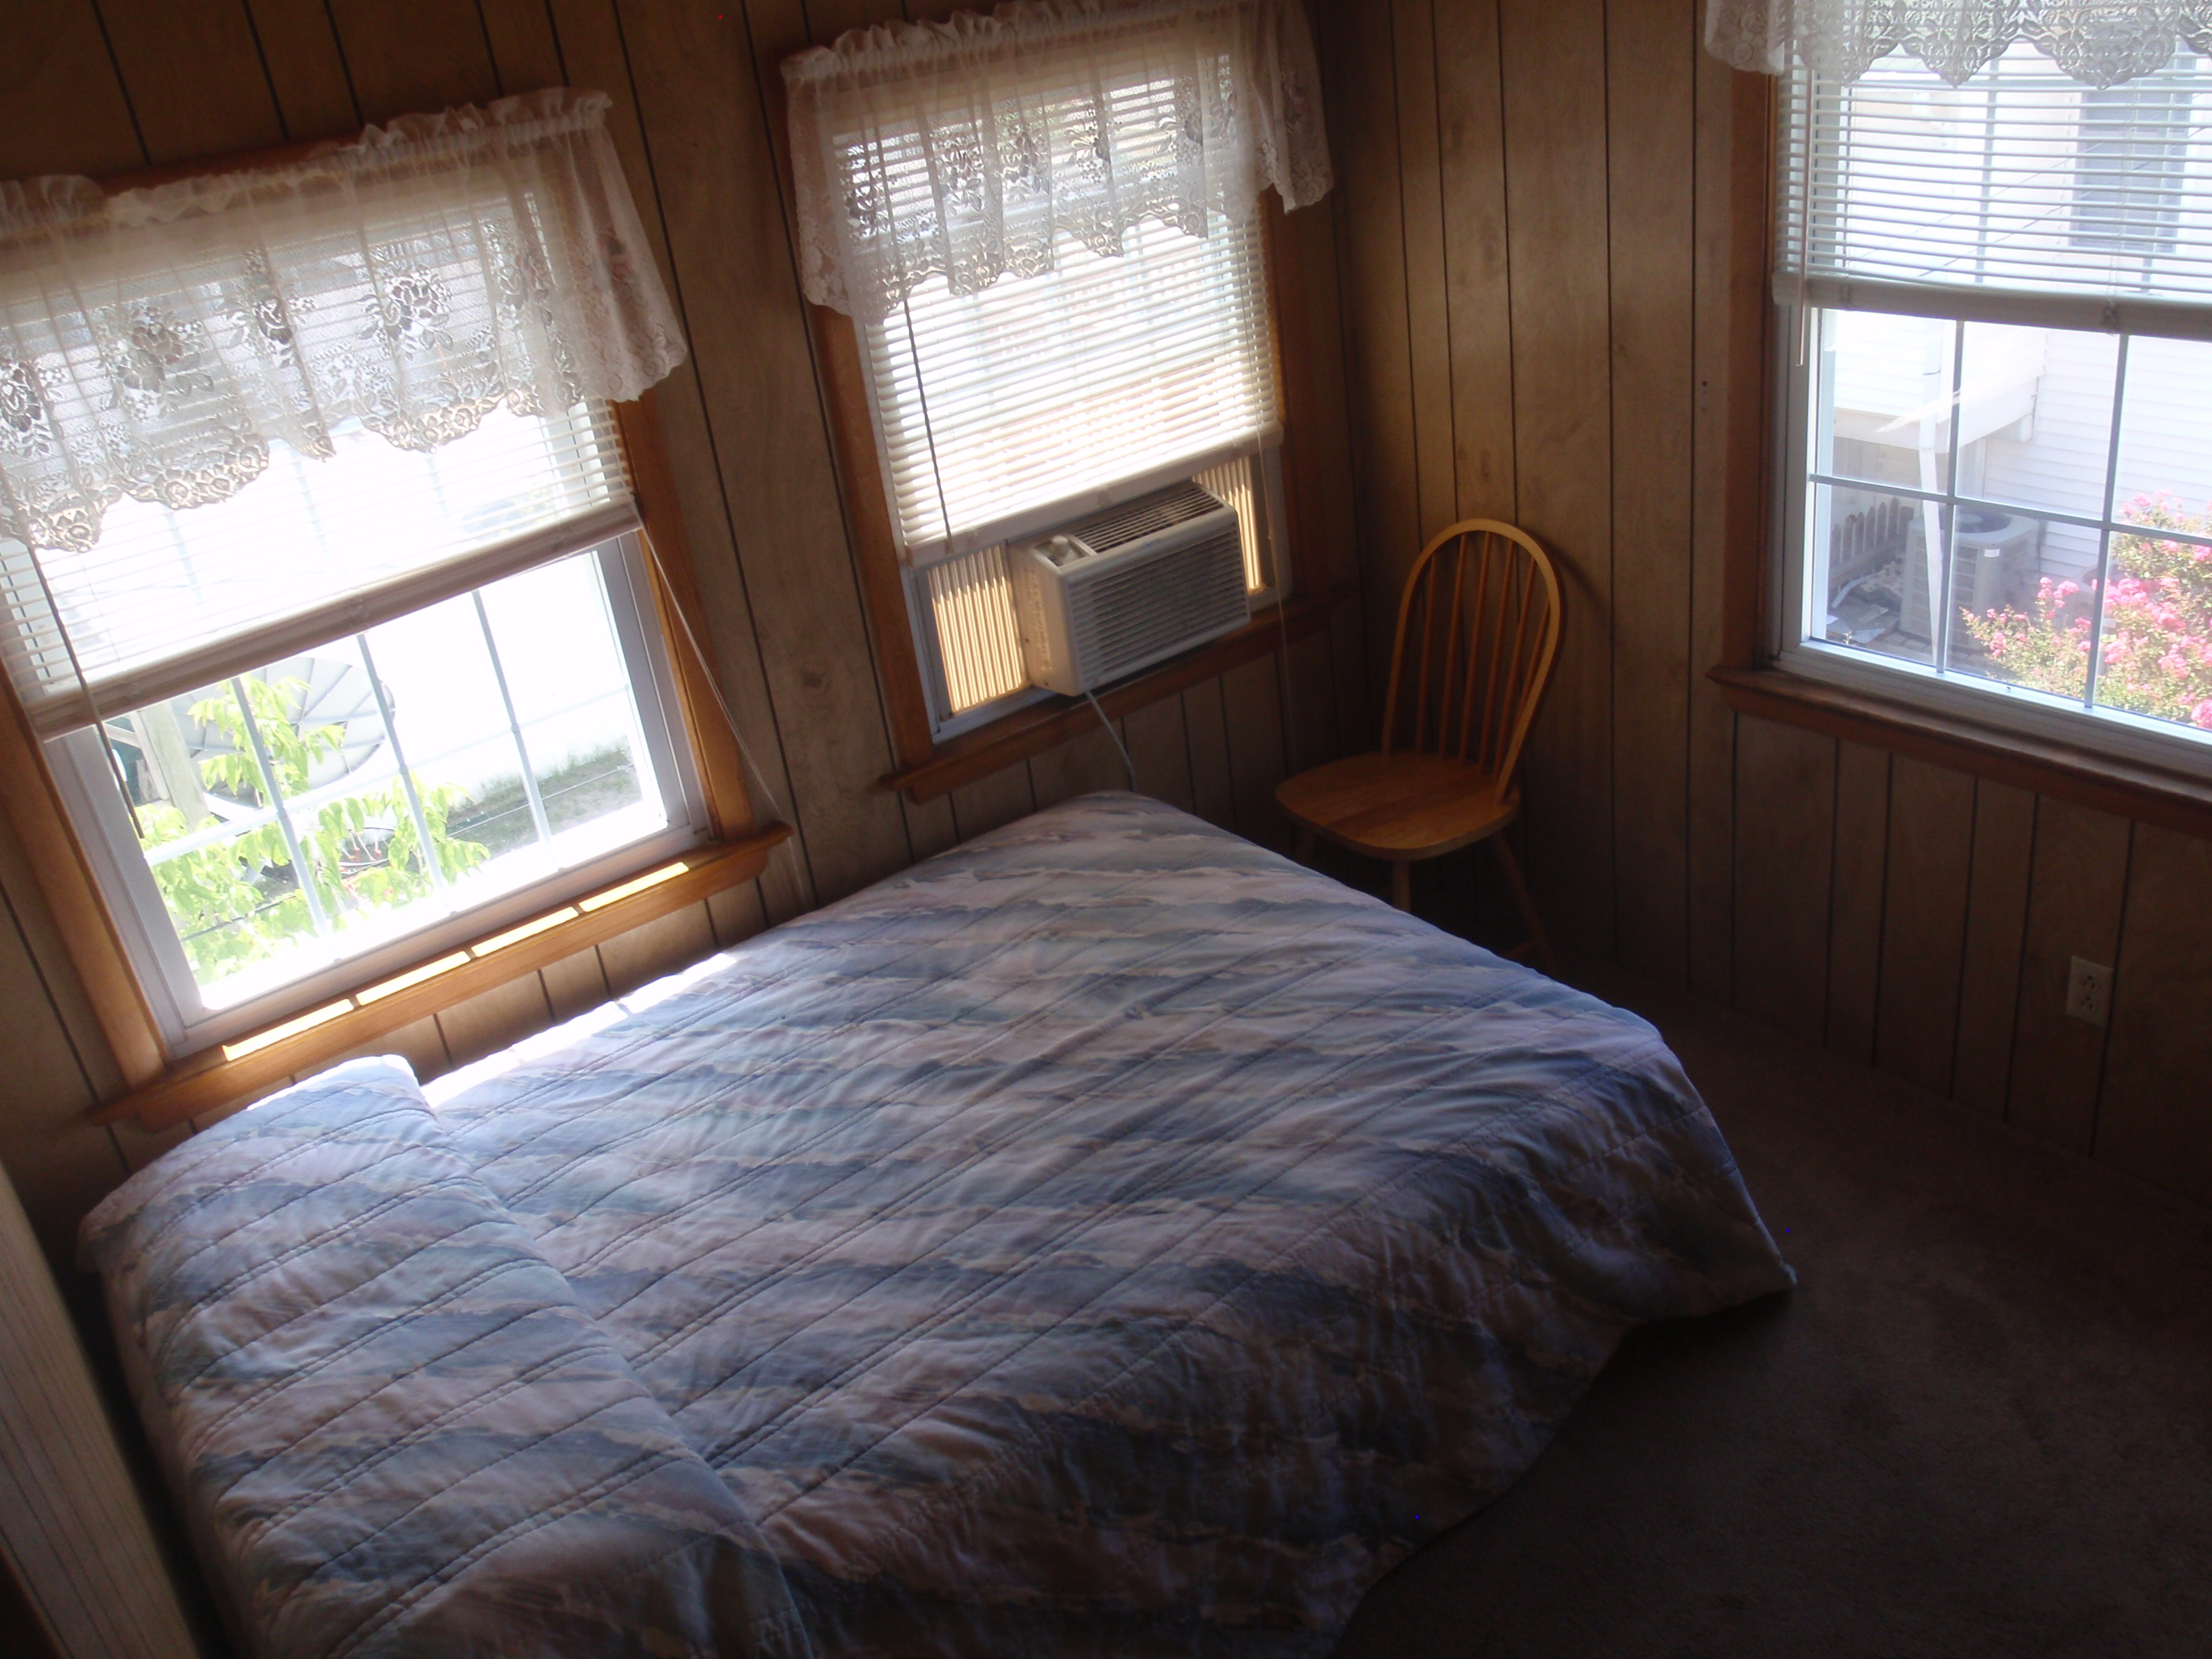 bedroom with full size bed, window a/c unit, and chair